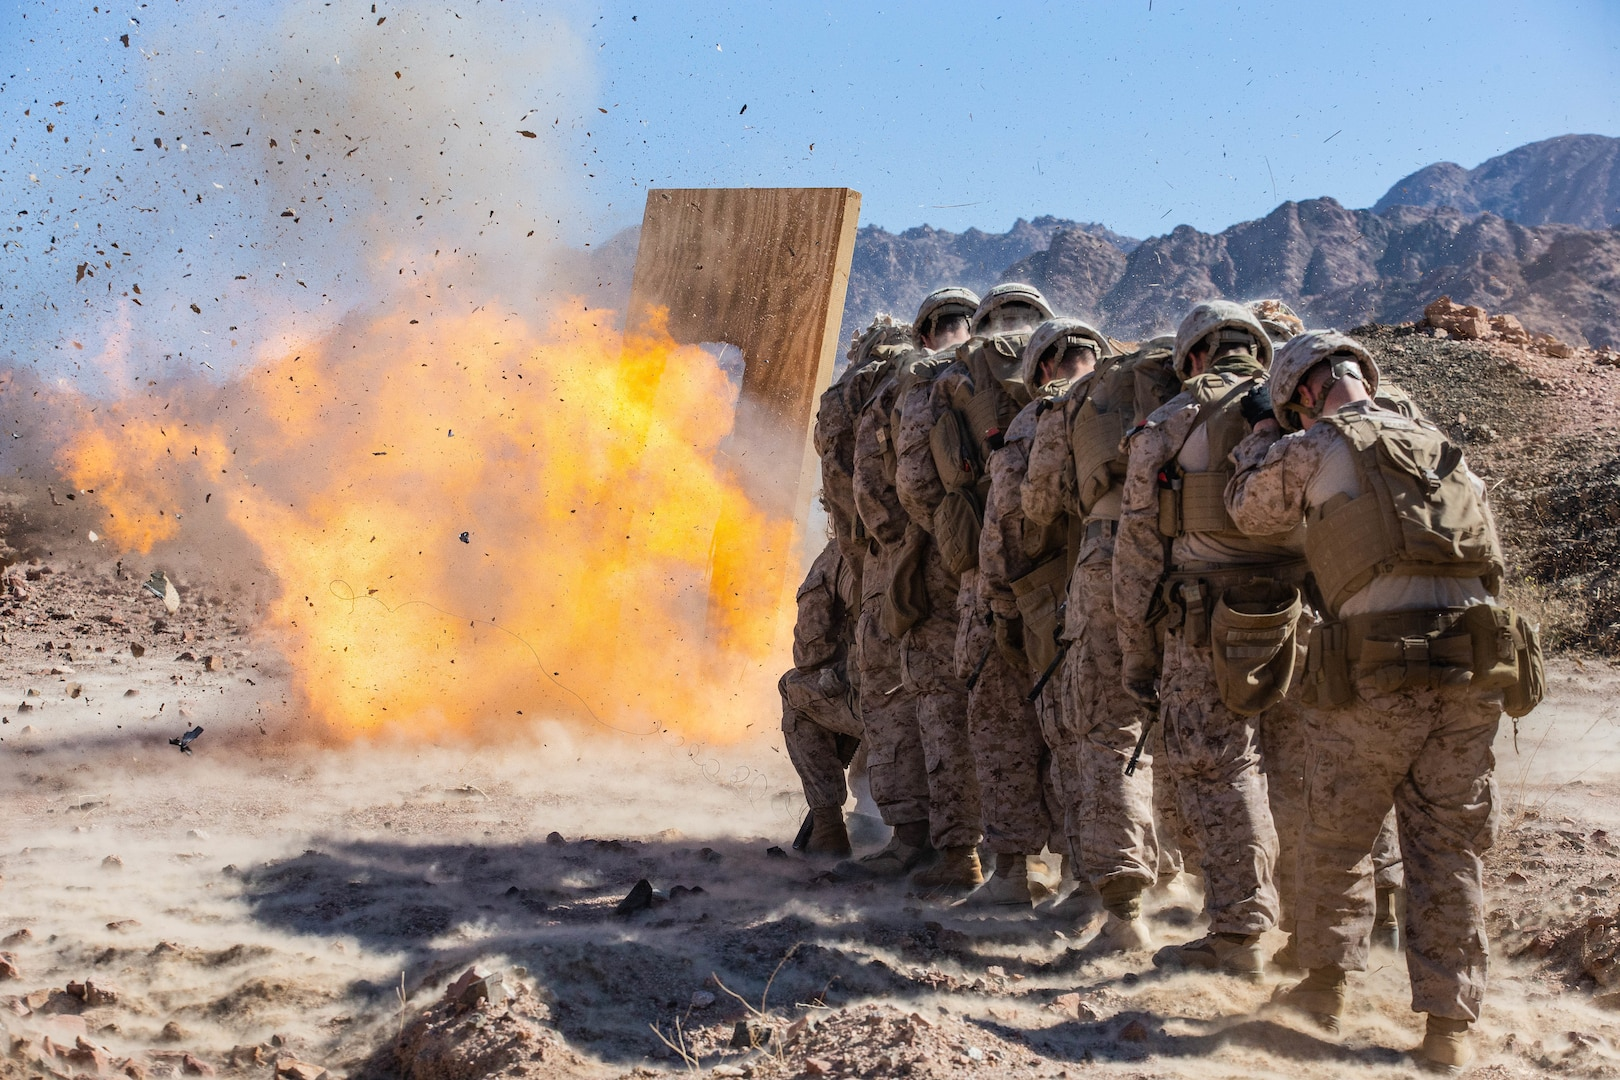 U.S. Marines breach a door during a demolition range in Jordan, March 6.